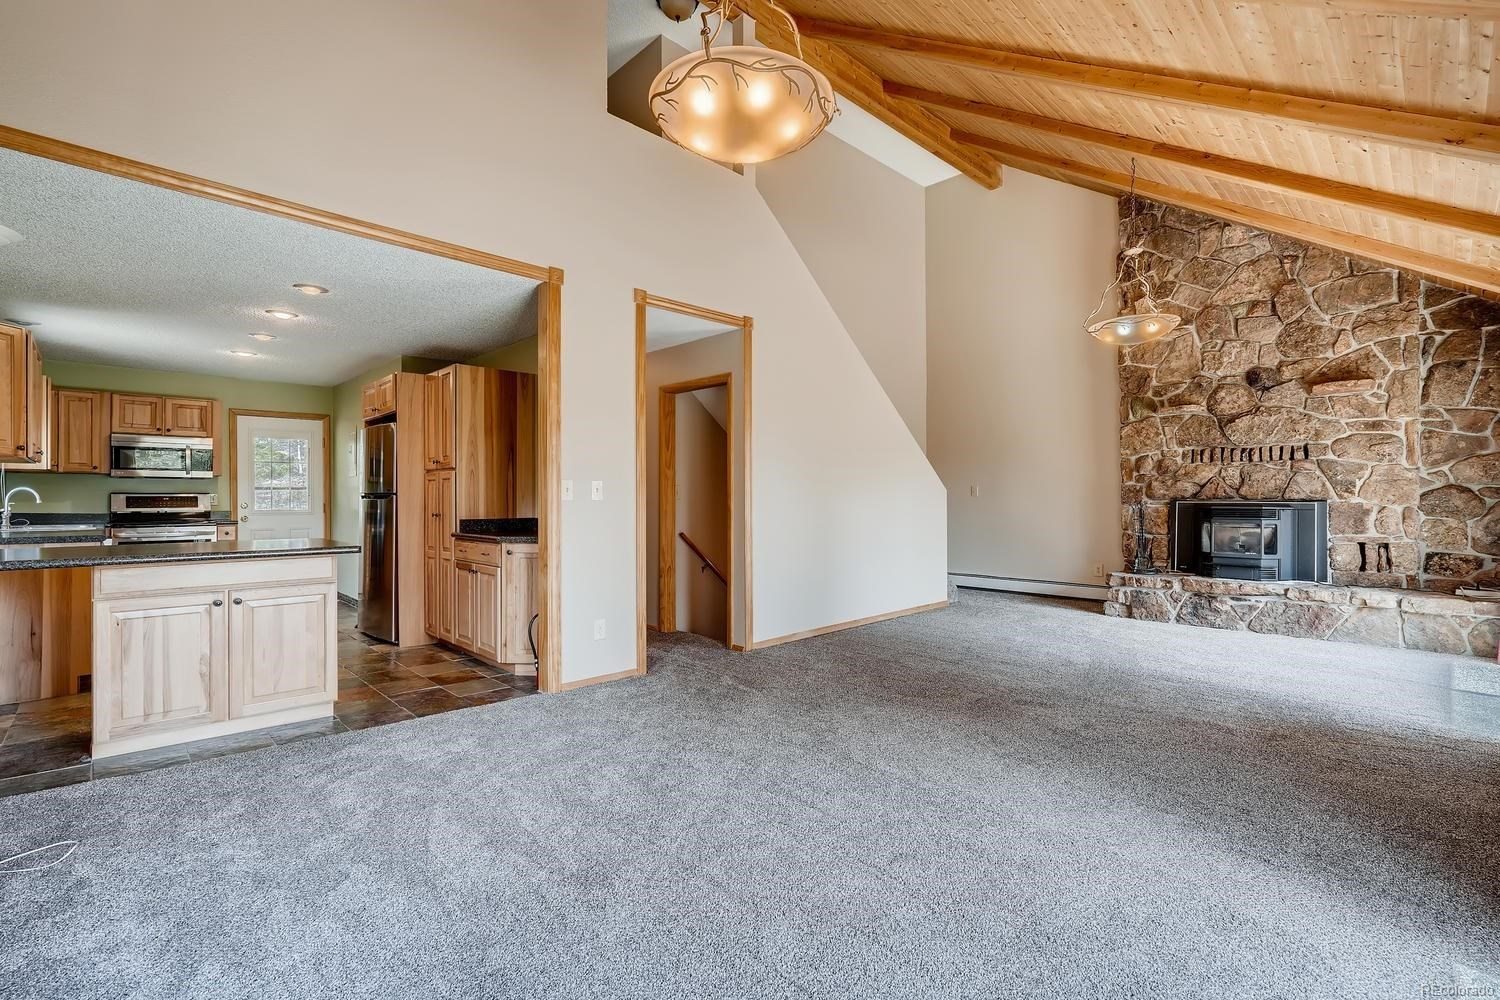 MLS# 8376760 - 1 - 30915 Walter Drive, Conifer, CO 80433